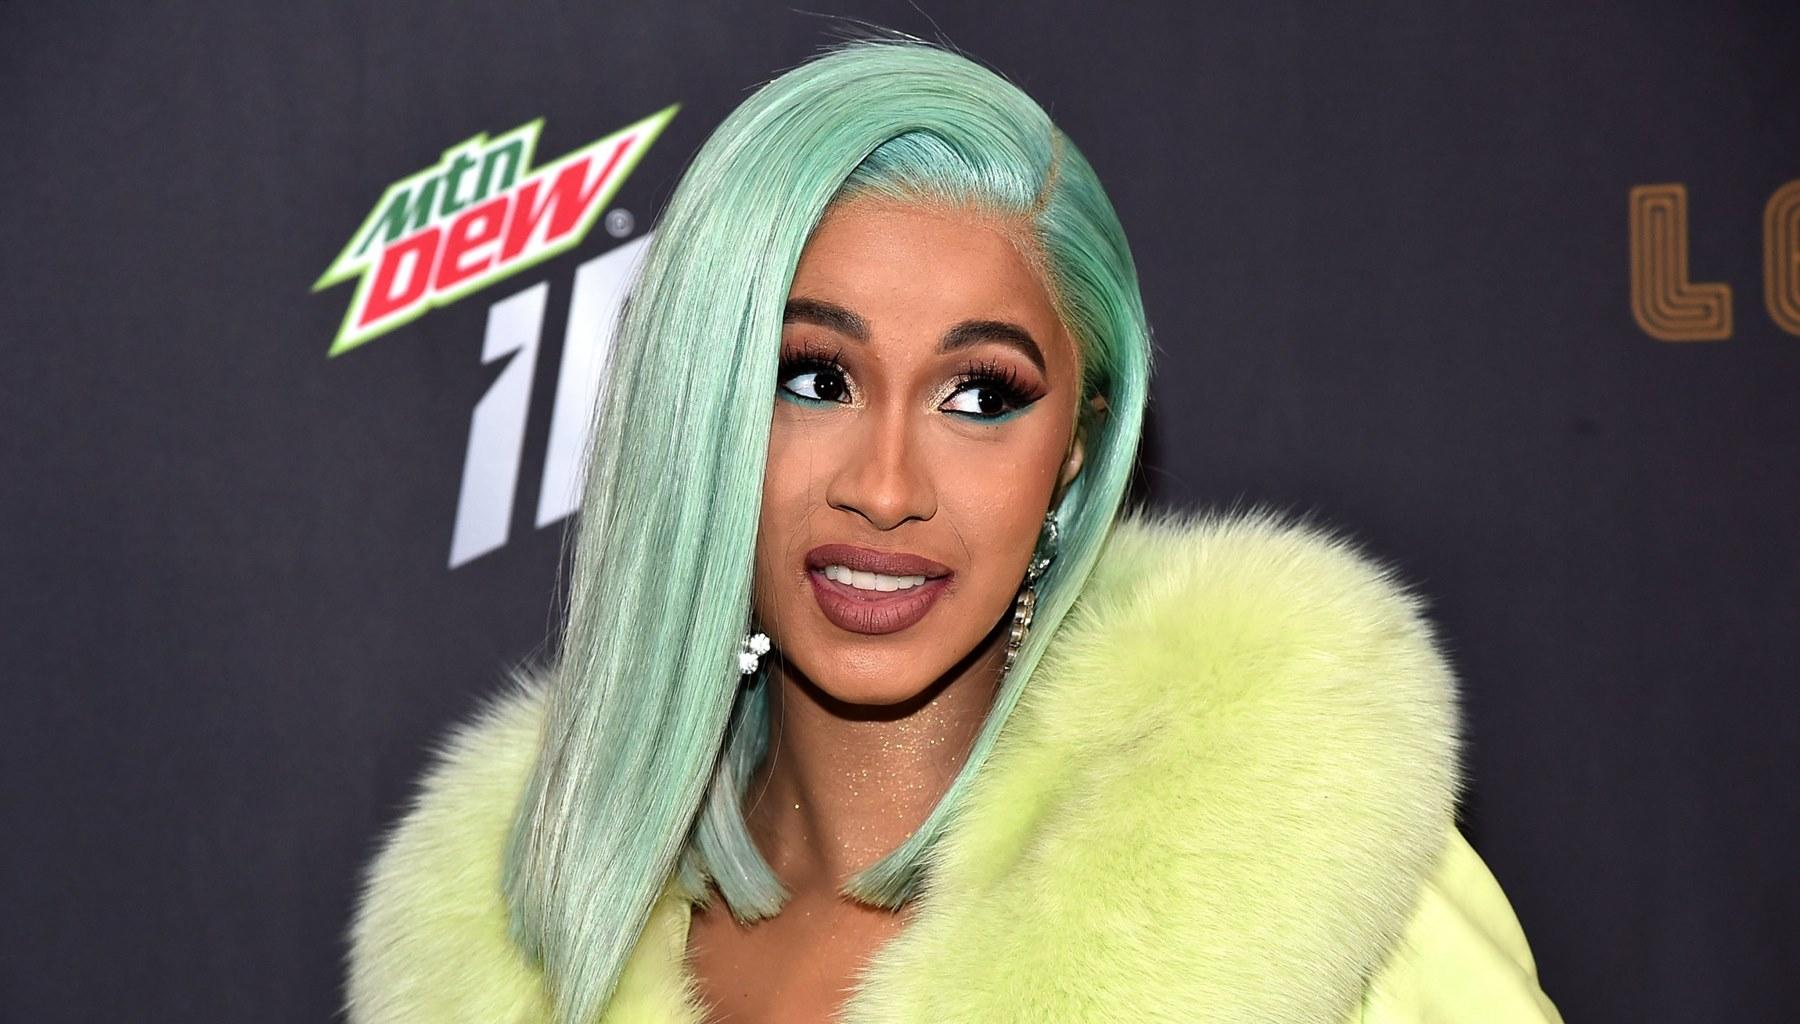 Cardi B Spotted Without Makeup And Colorful Wig In New Photos -- Some Say Offset's Wife Is Unrecognizable, While Others Claim She Is A Natural Beauty